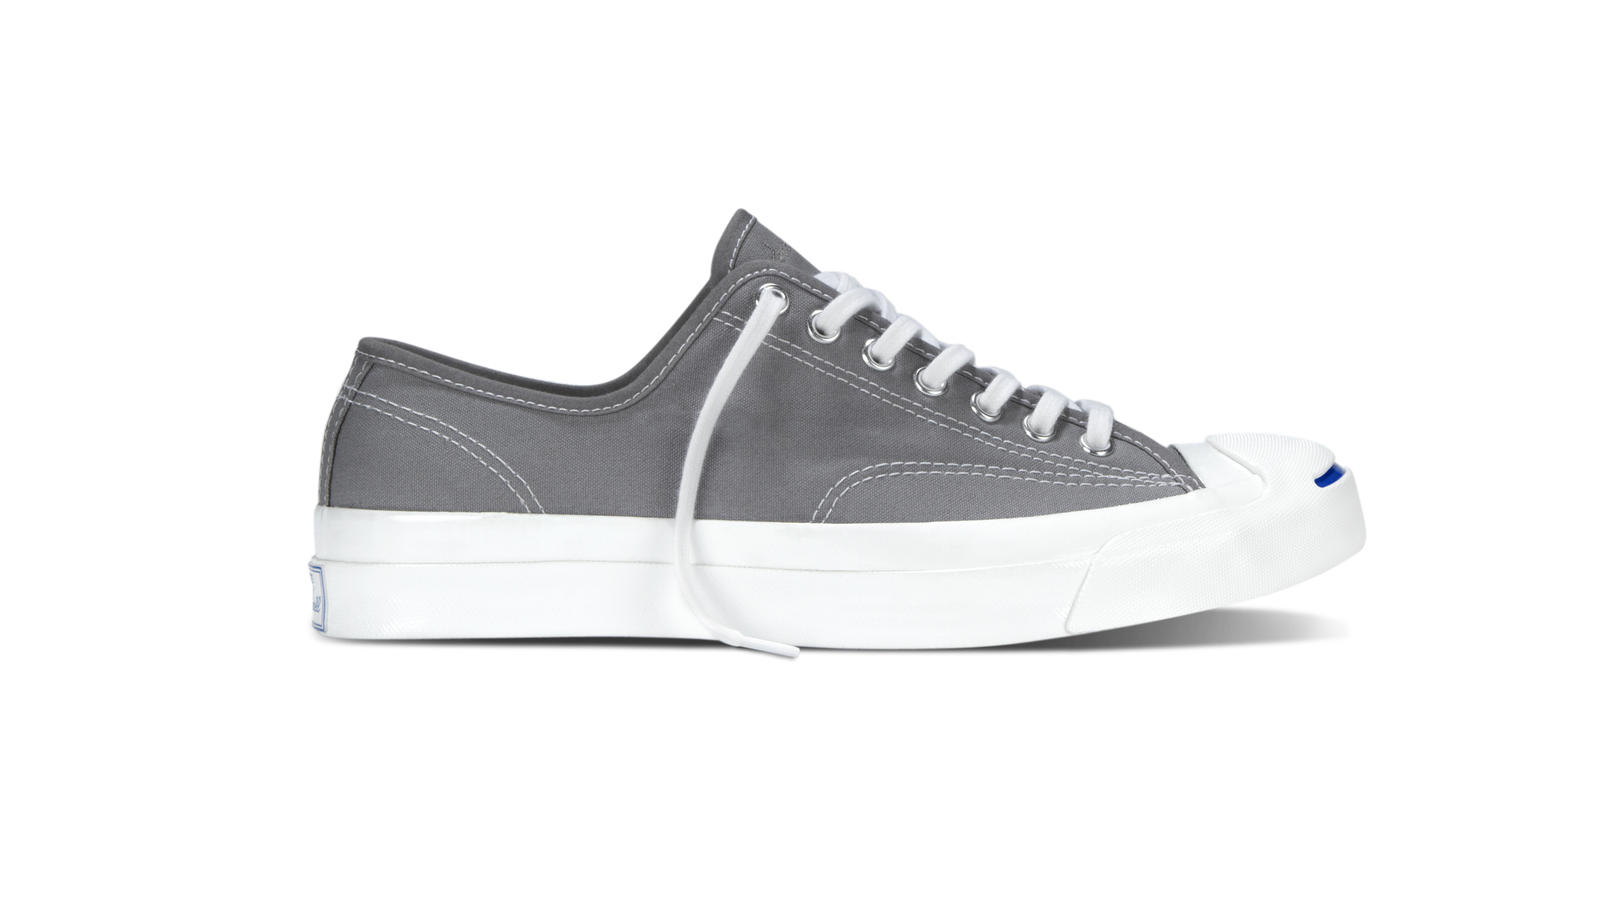 67930d77b7eb CONVERSE DEBUTS THE JACK PURCELL SIGNATURE SNEAKER - Nike News